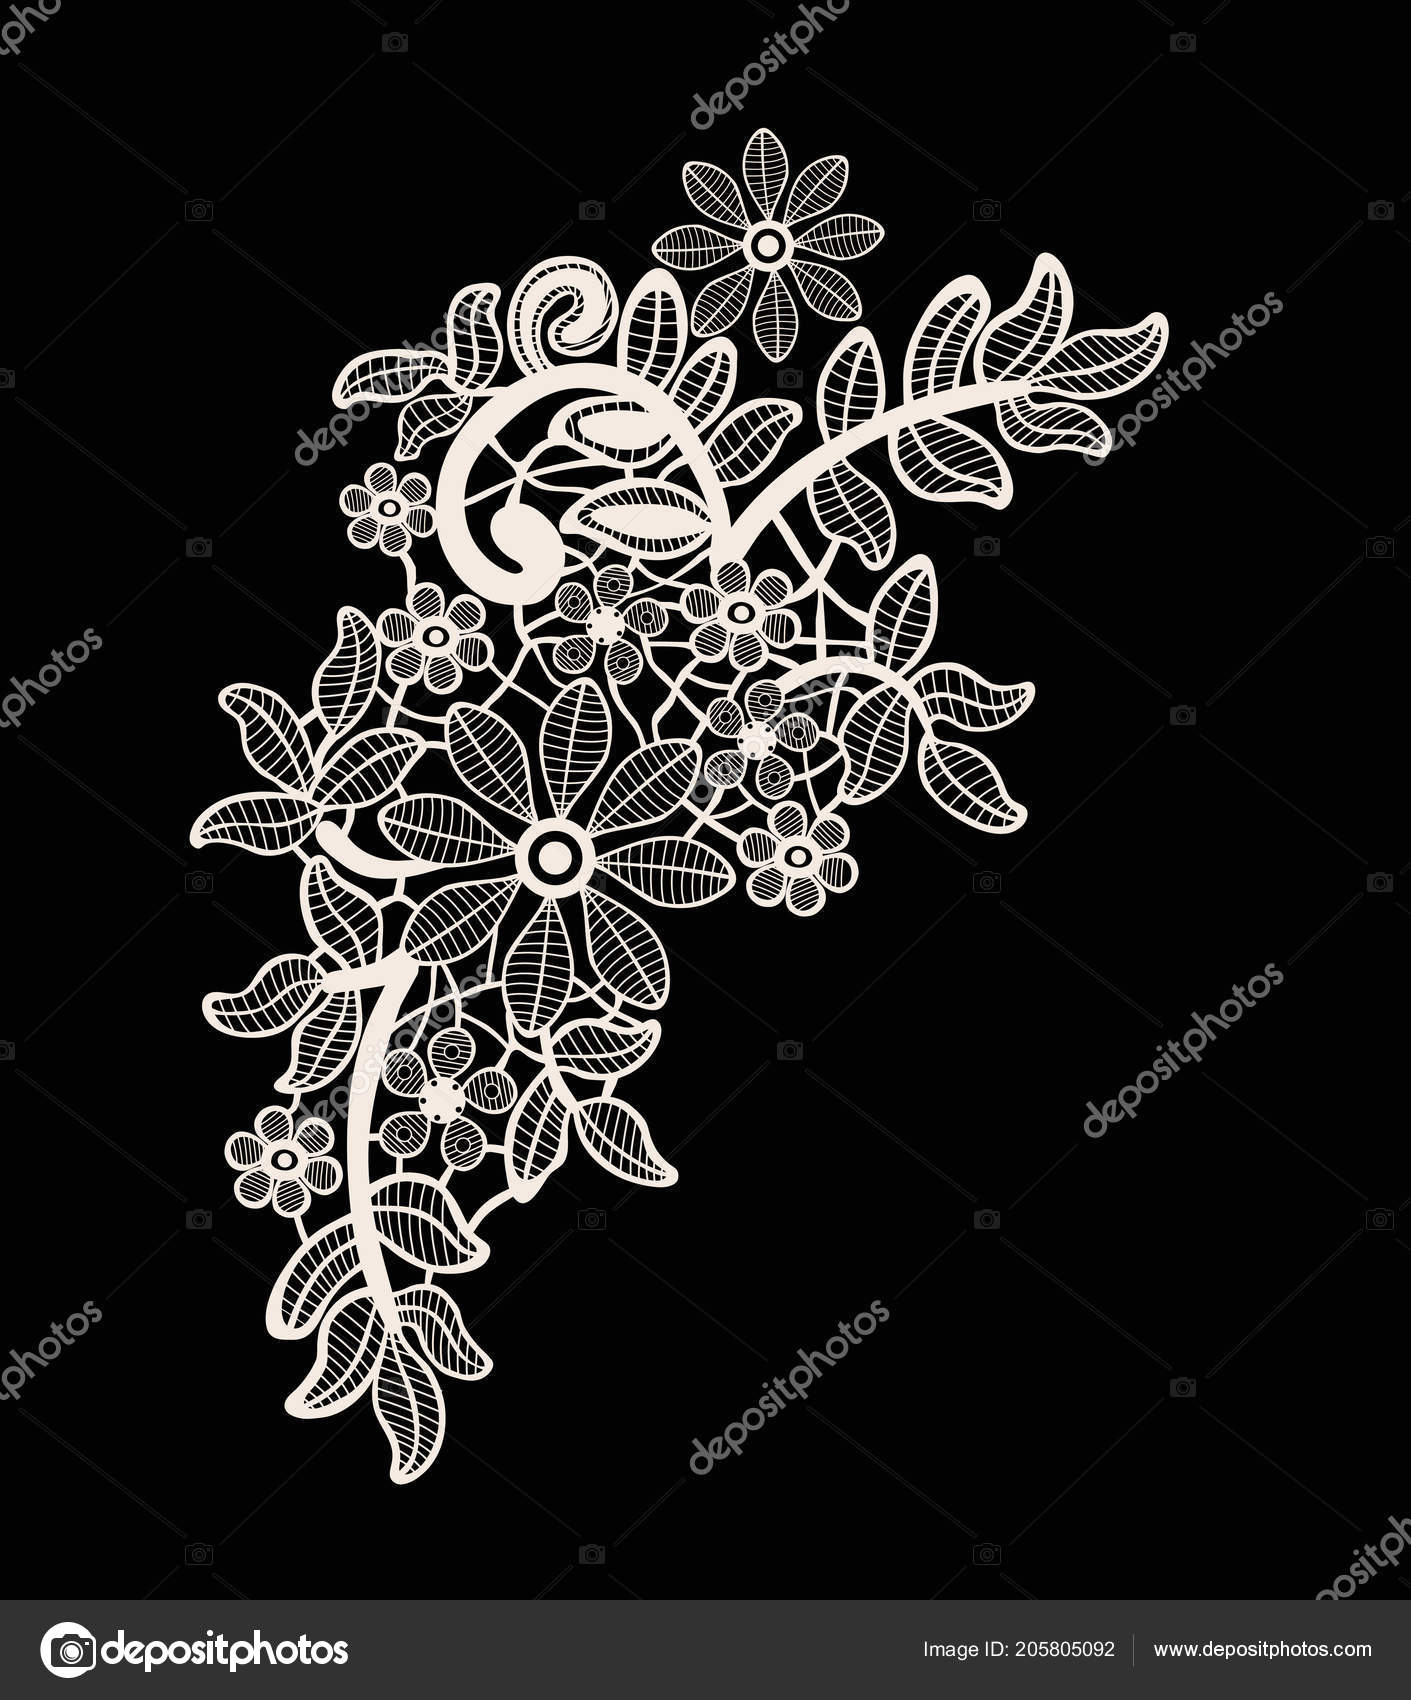 Neck Embroidery Design Lace Print Vector Black Background Stock Vector C Workingpens 205805092